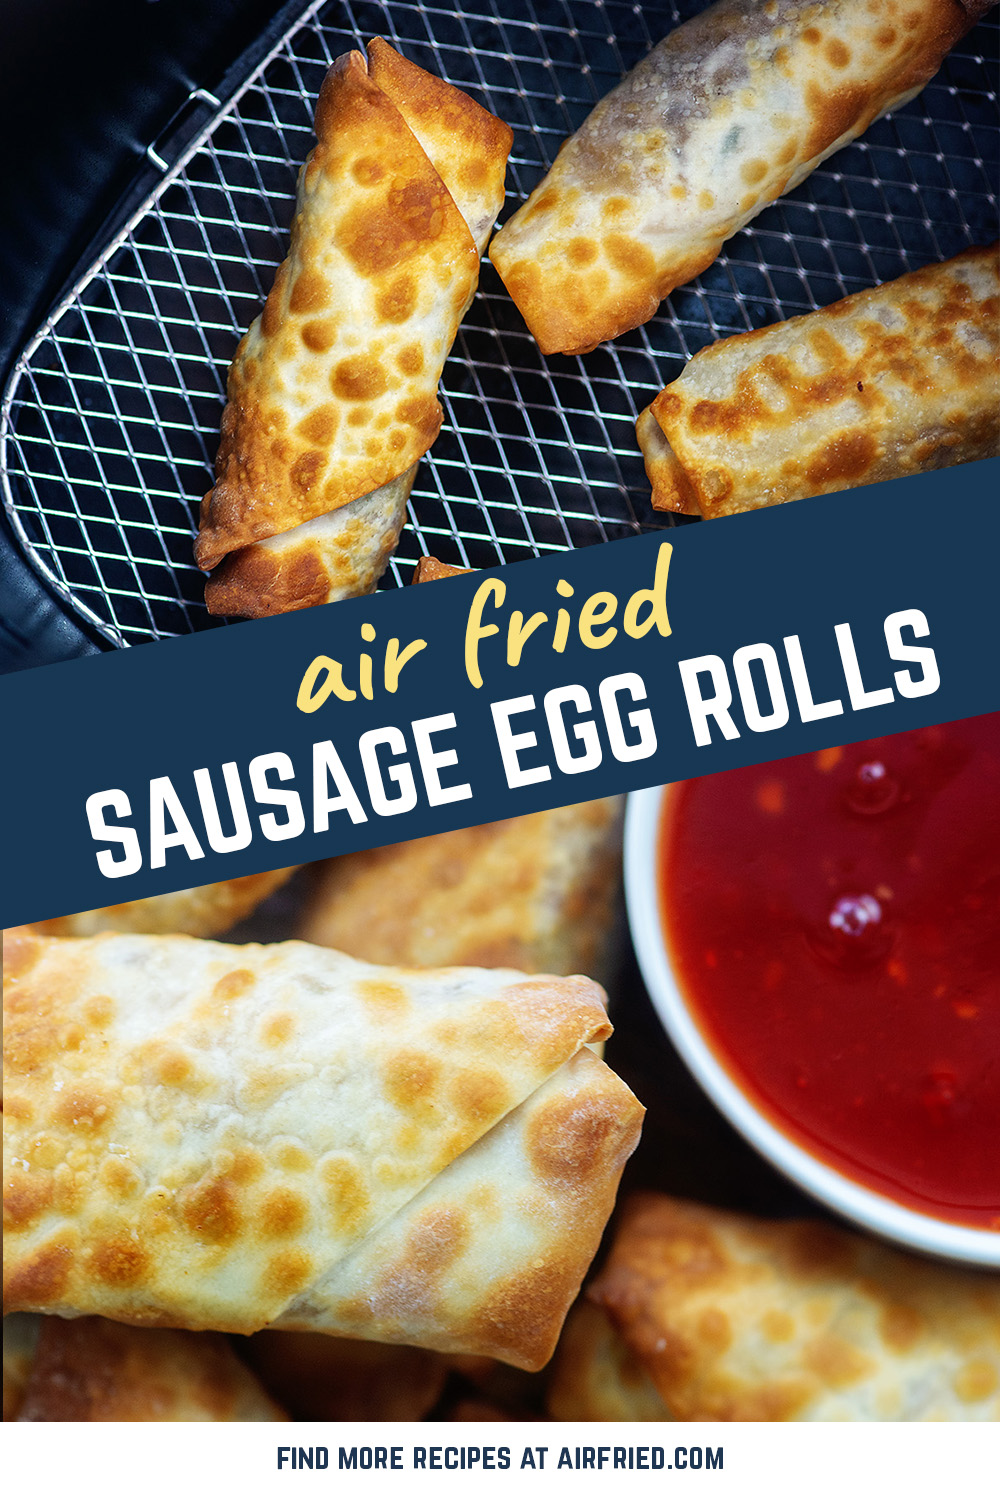 Homemade sausage egg rolls give you a crispy shell you will struggle to mimic with frozen egg rolls.  #airfried #sausage #recipes